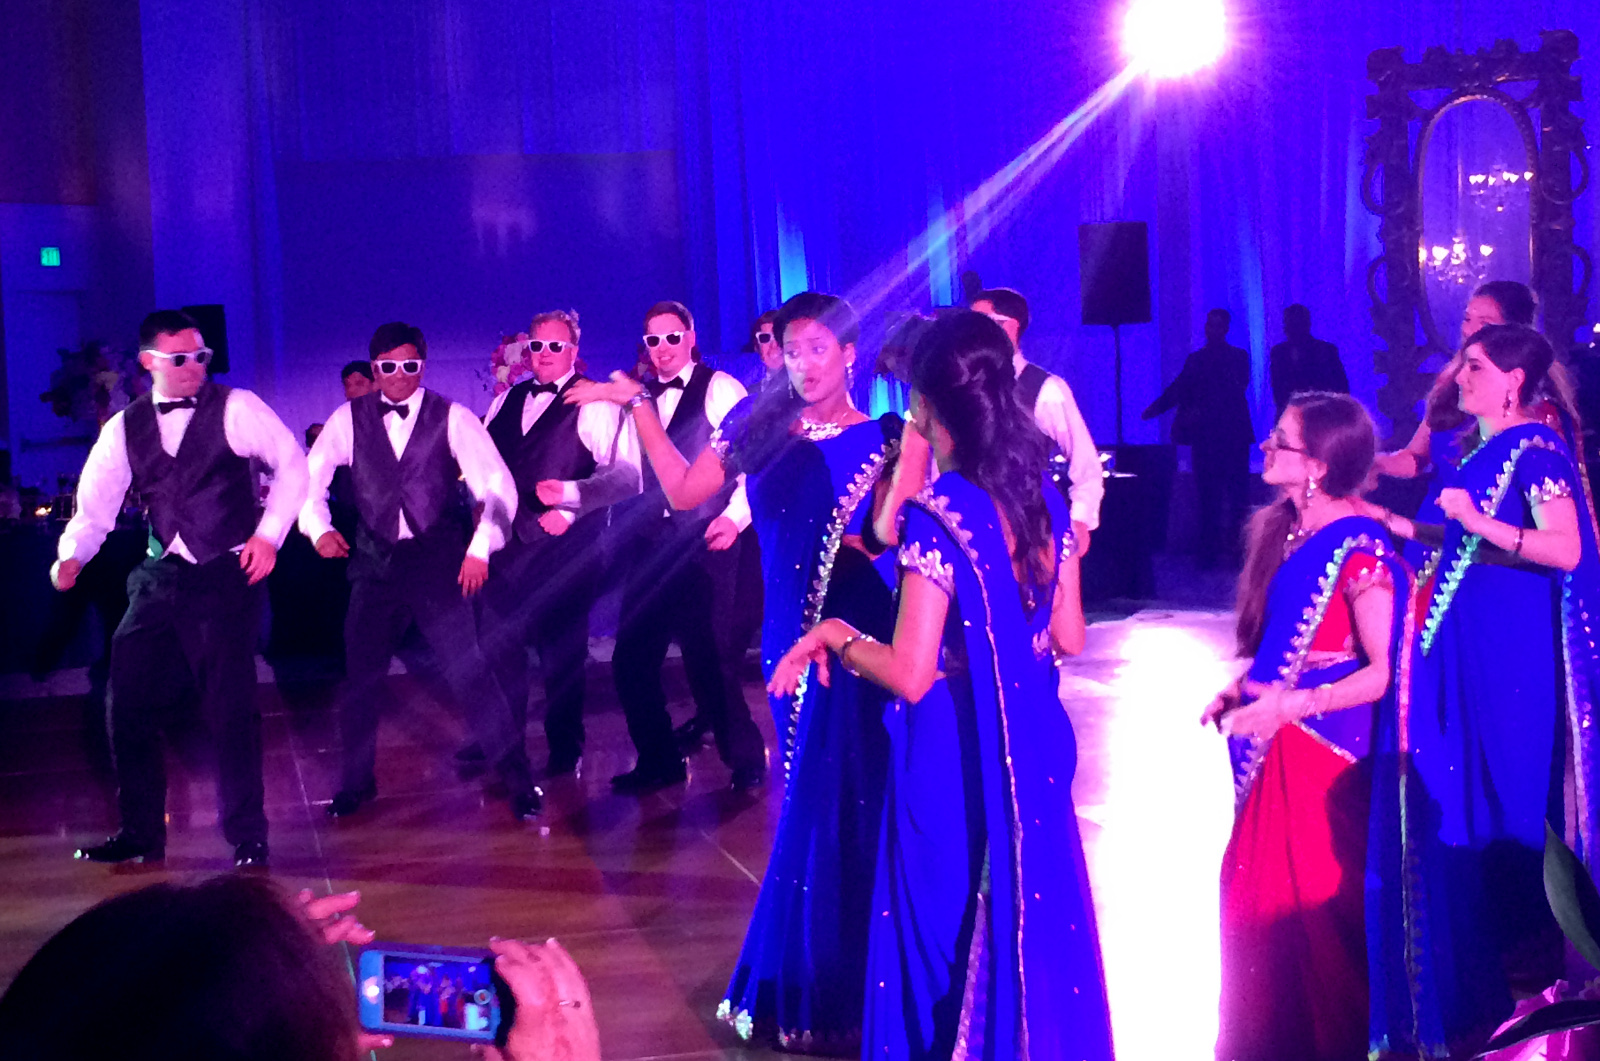 cozy birdhouse | bollywood-style dancing at joe and roshni's wedding reception